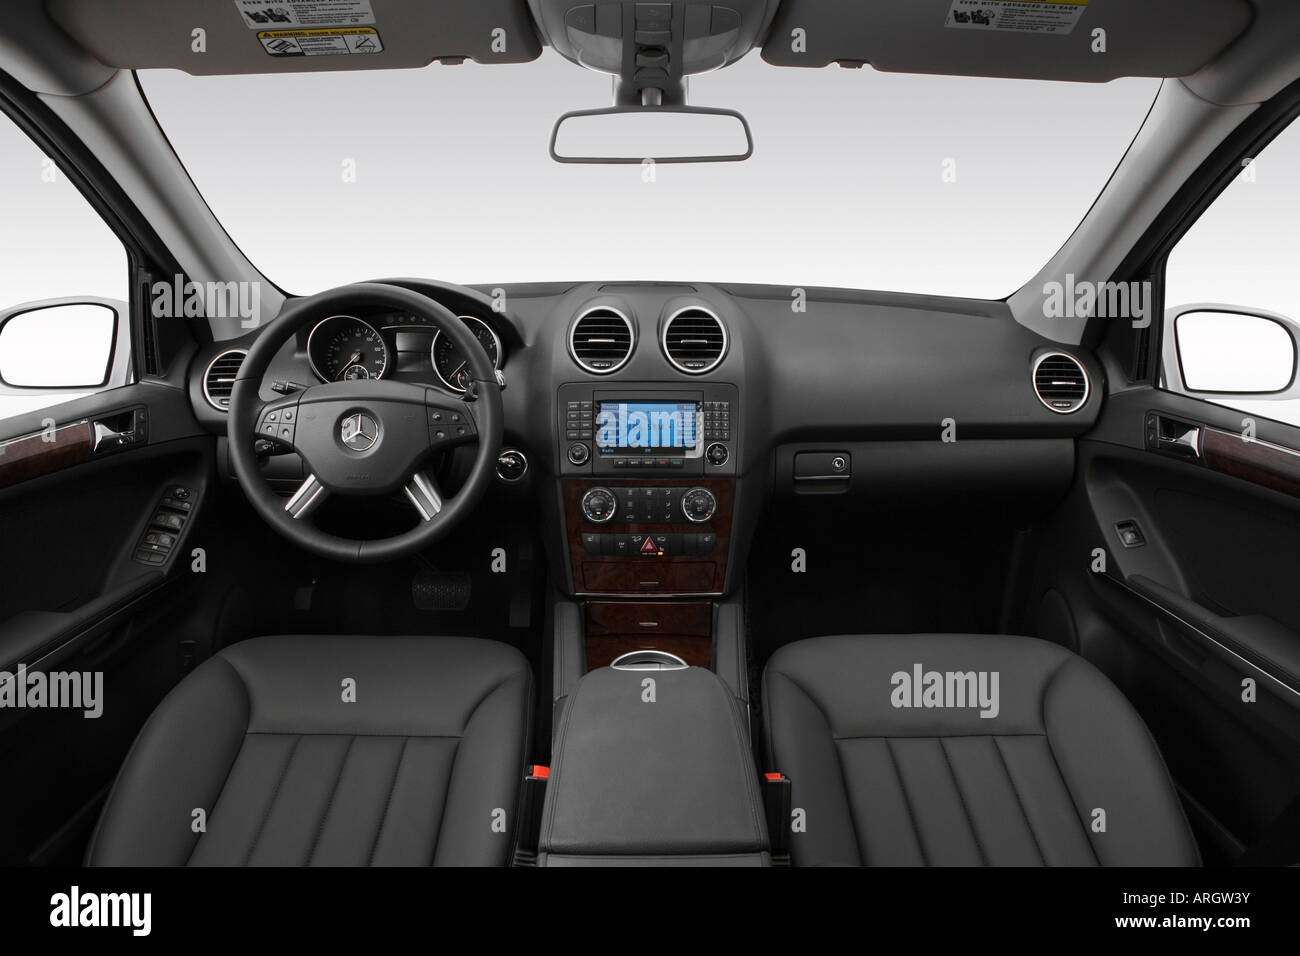 2007 mercedes benz ml 500 in silver dashboard center console gear stock photo 16052222 alamy. Black Bedroom Furniture Sets. Home Design Ideas